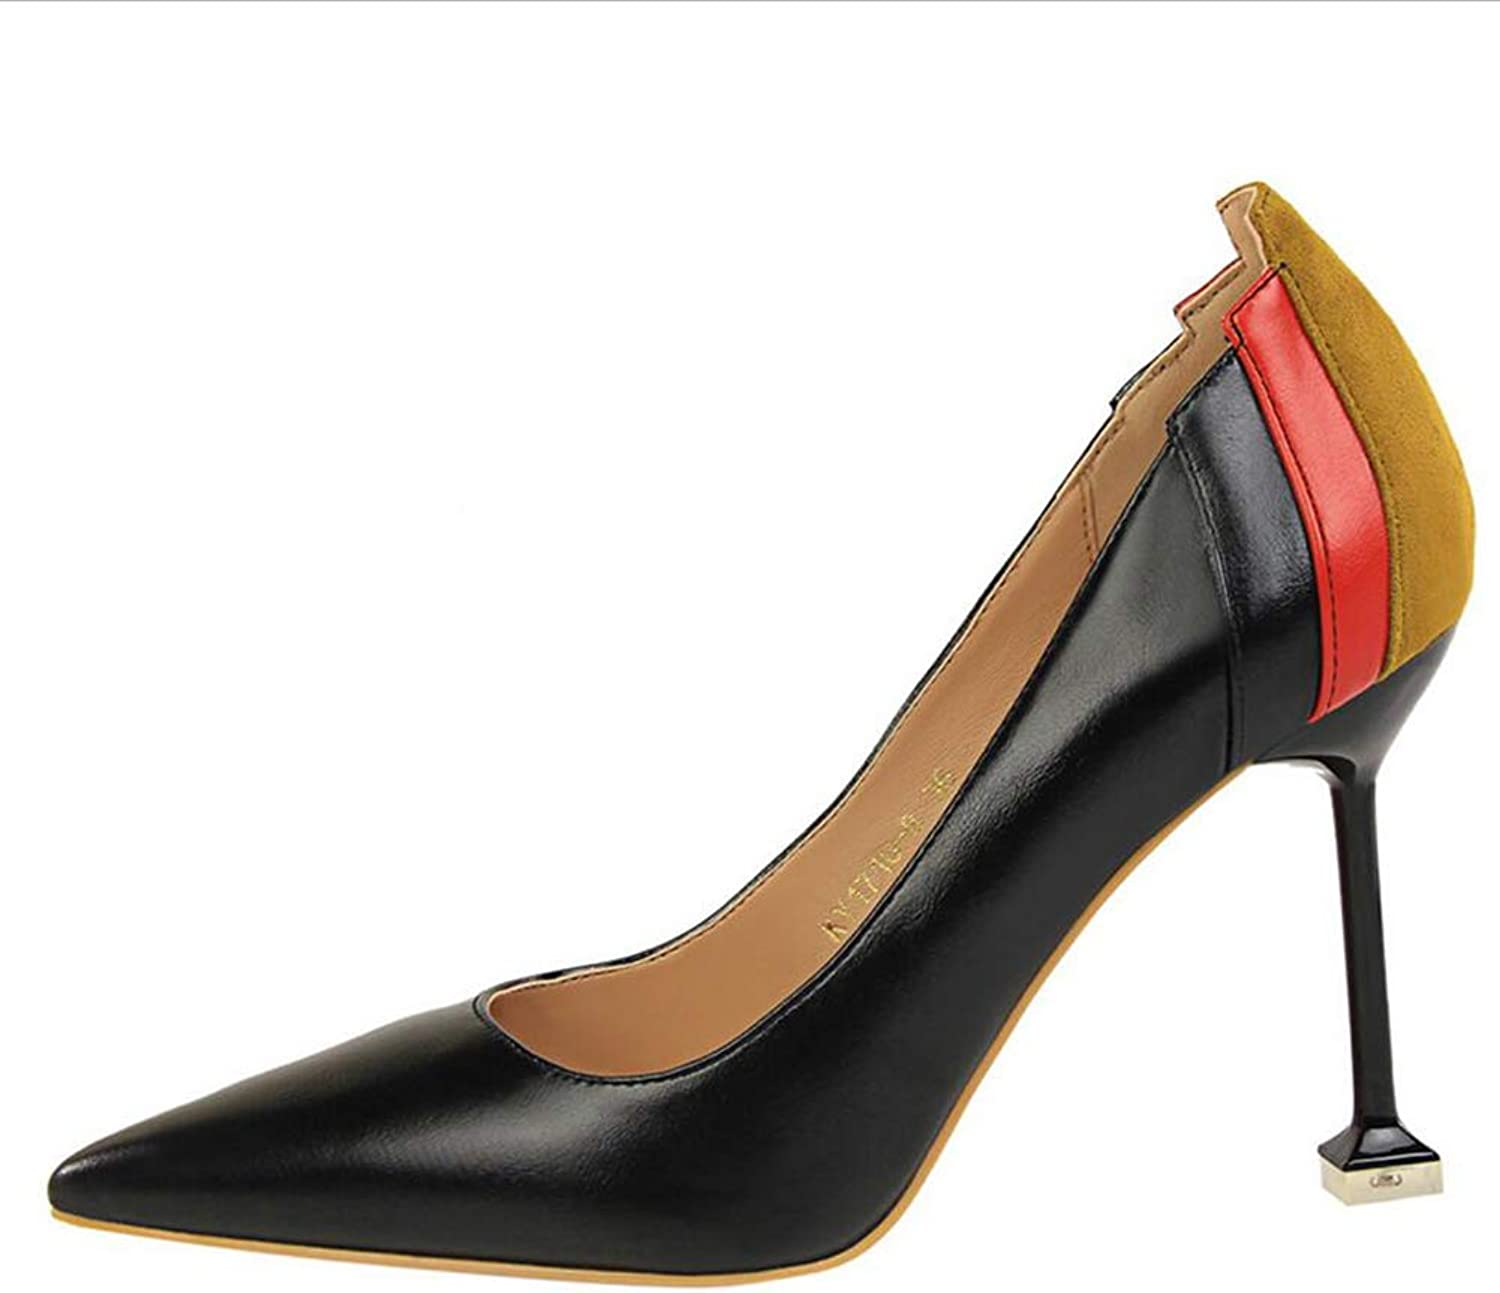 shoes Court shoes Women's shoes High HeelFashion Simple Female Fine Heel Shallow Mouth Pointed Mixed colors Sexy shoes Haiming (color   Black, Size   39)